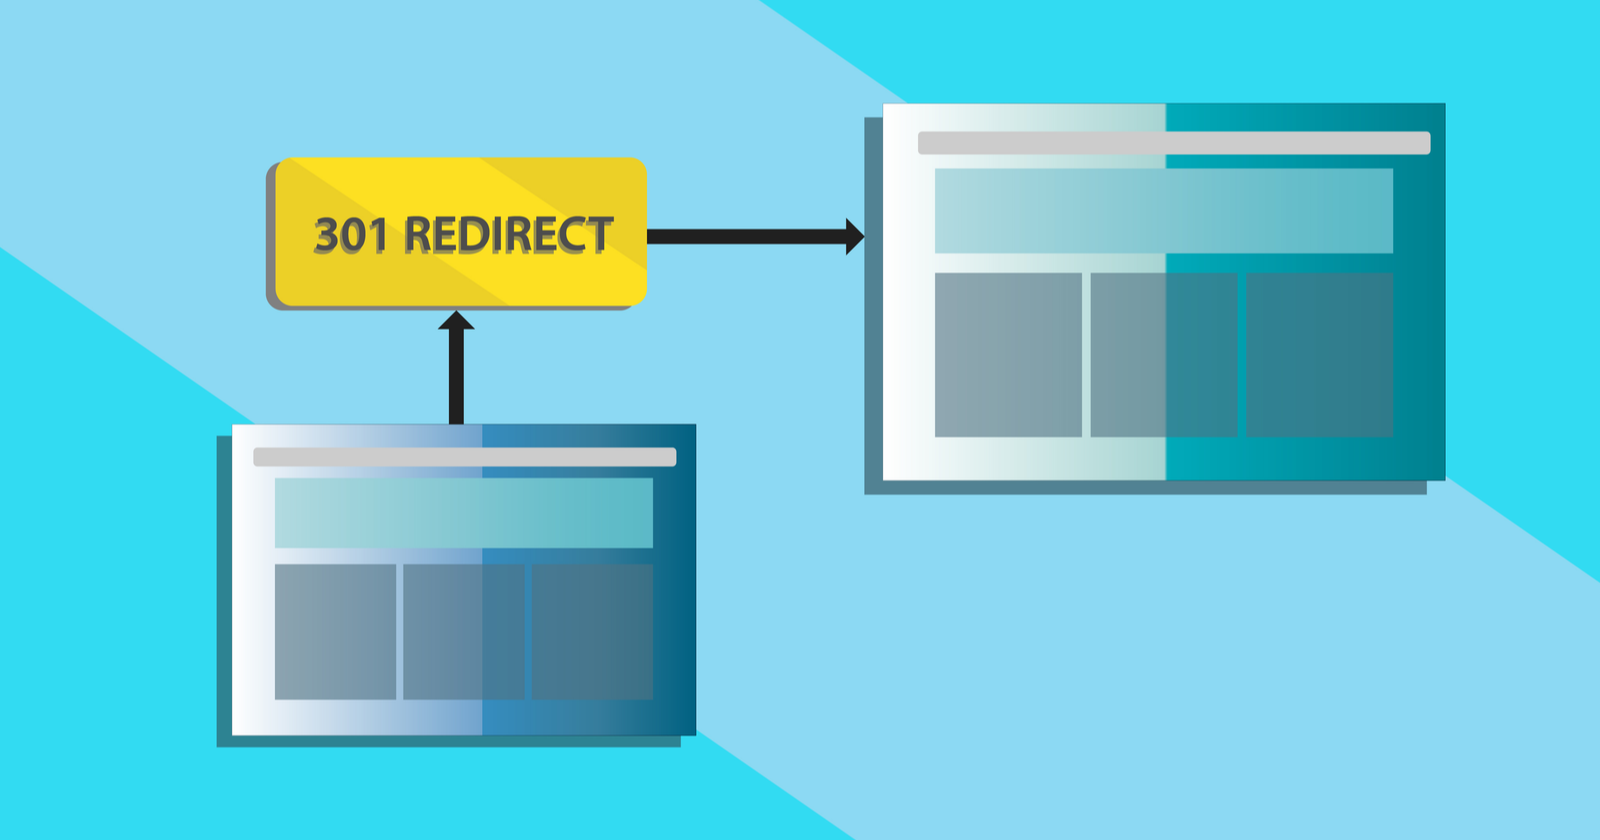 should-i-buy-redirect-expired-domains-5f3133c7e6ca6.png